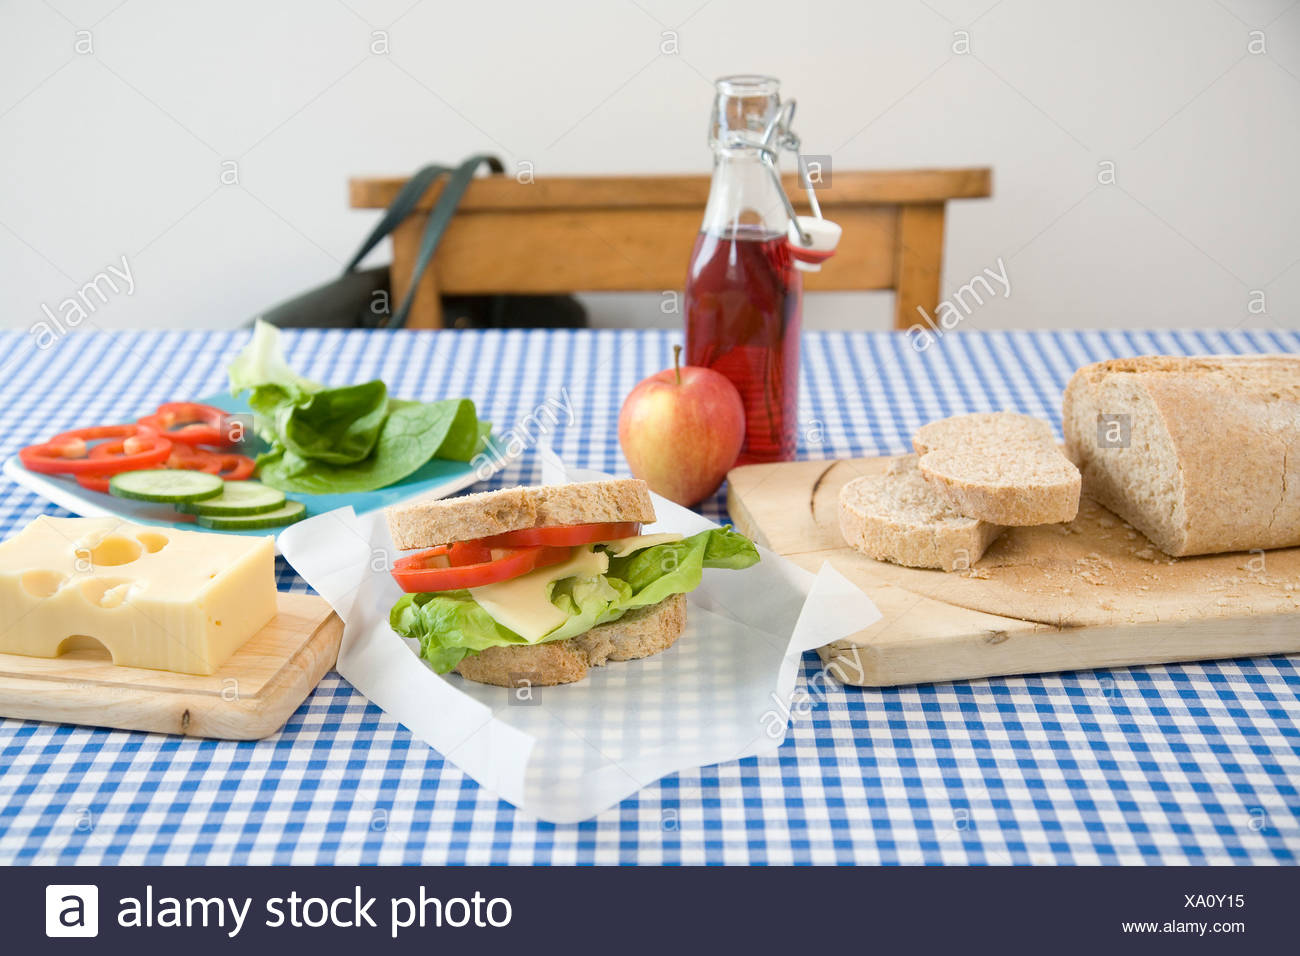 Packed lunch and ingredients - Stock Image